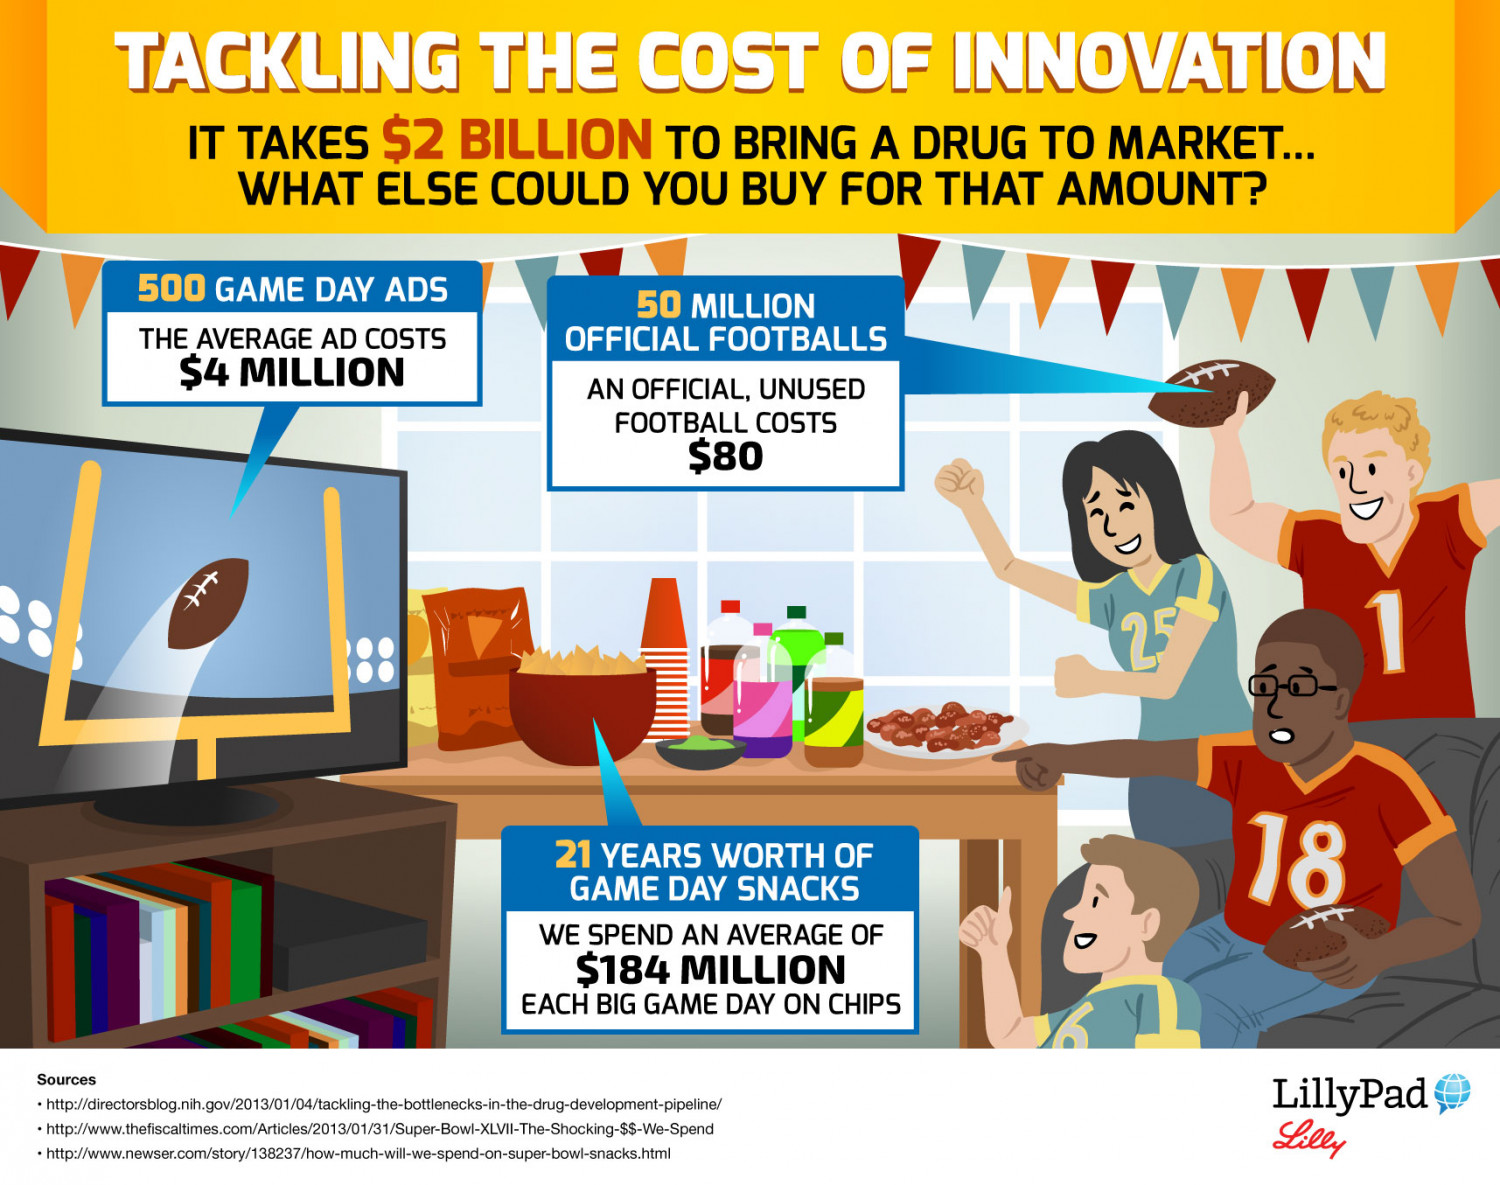 Tackling the Cost of Innovation Infographic